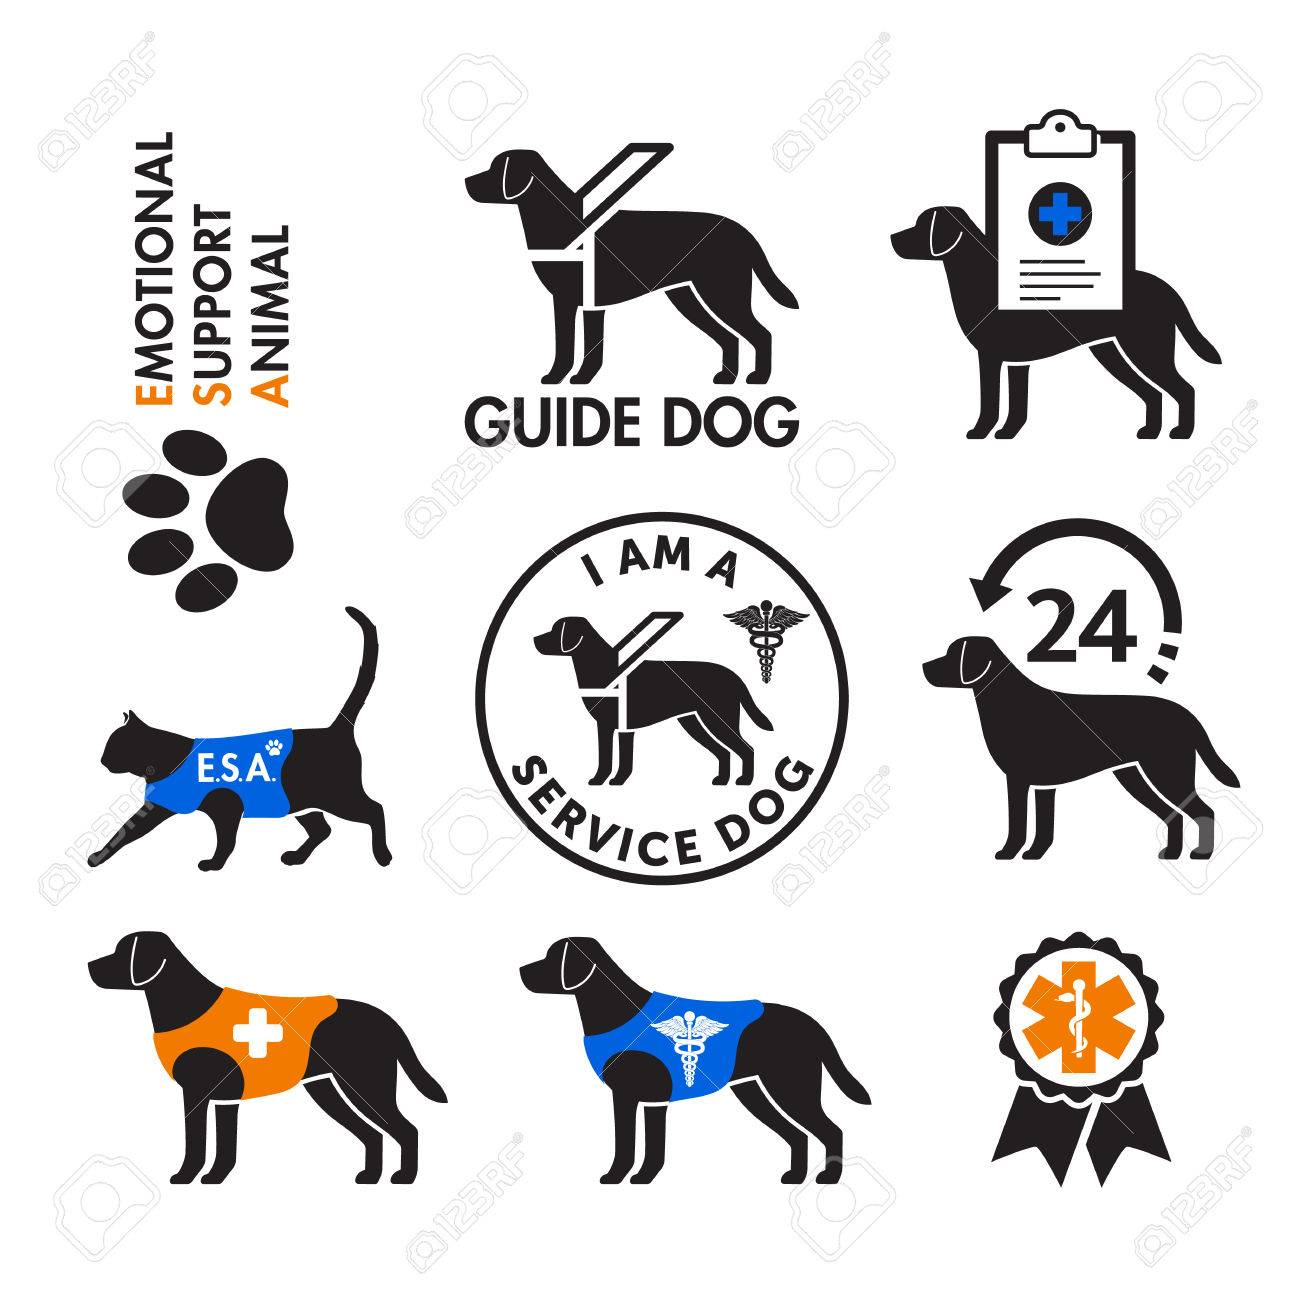 Image of: Reflective Service Dogs And Emotional Support Animals Emblems Stock Vector 74772284 123rfcom Service Dogs And Emotional Support Animals Emblems Royalty Free